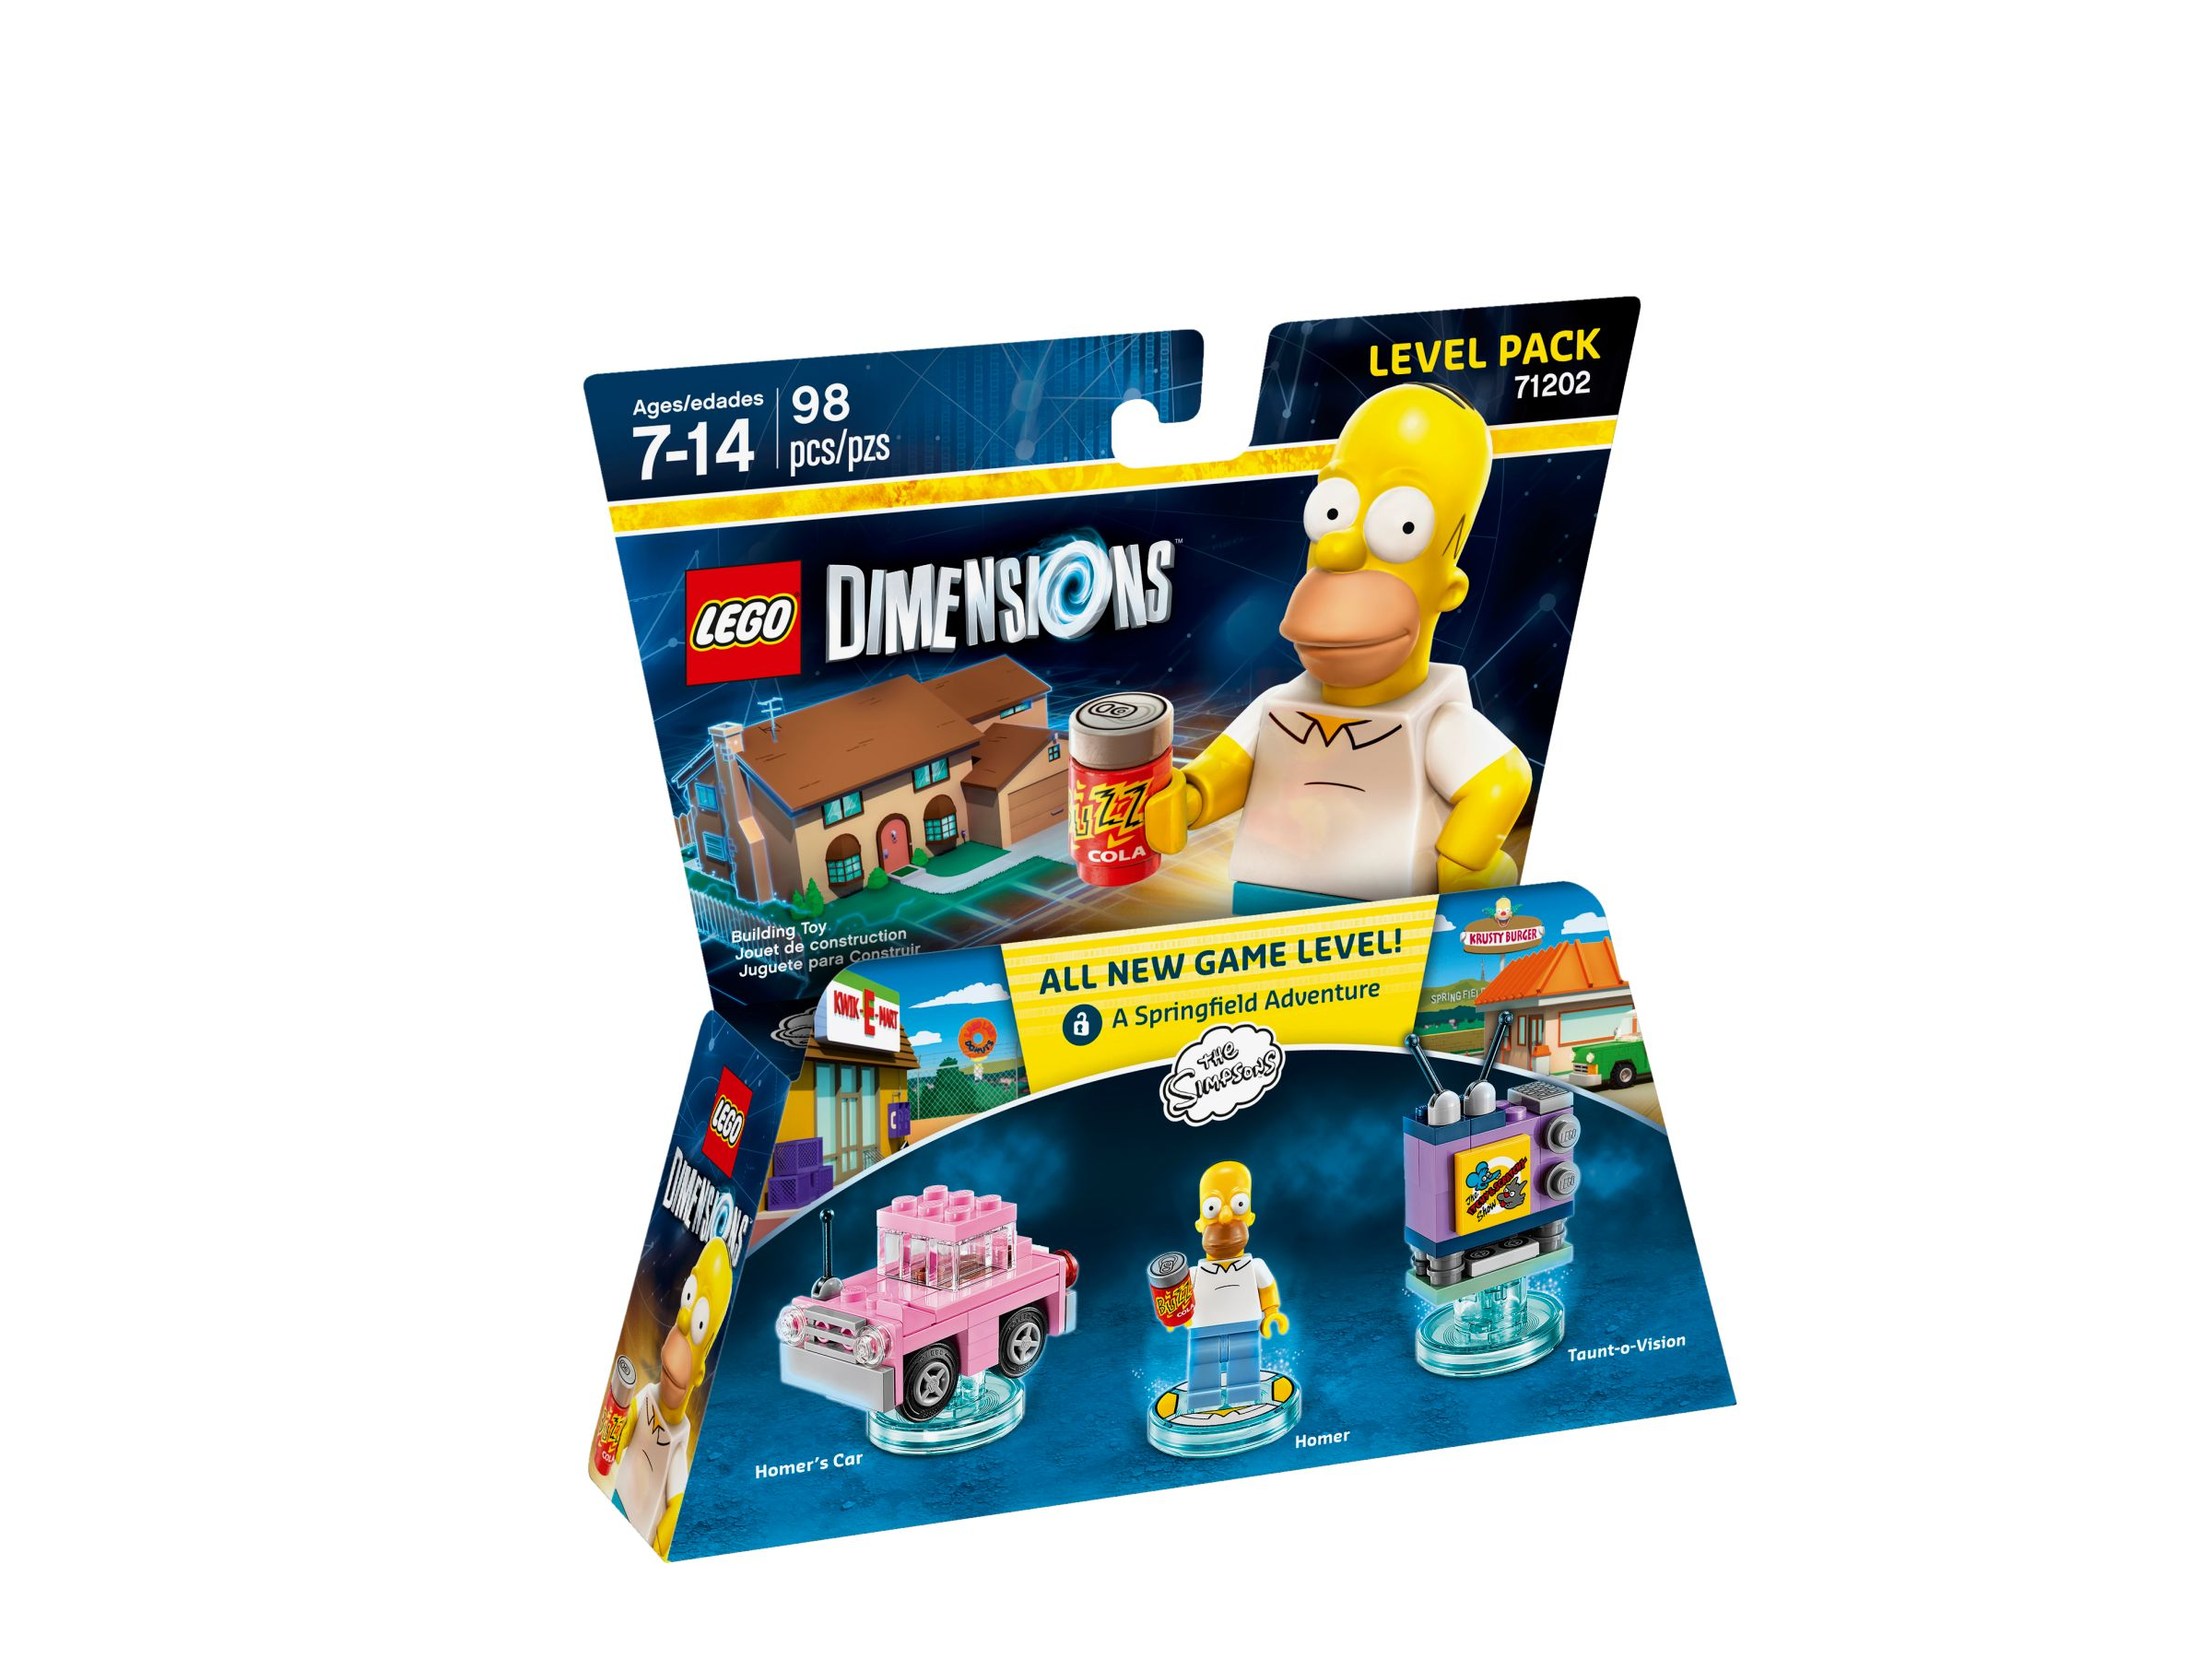 LEGO Dimensions 71202 Level Pack The Simpsons